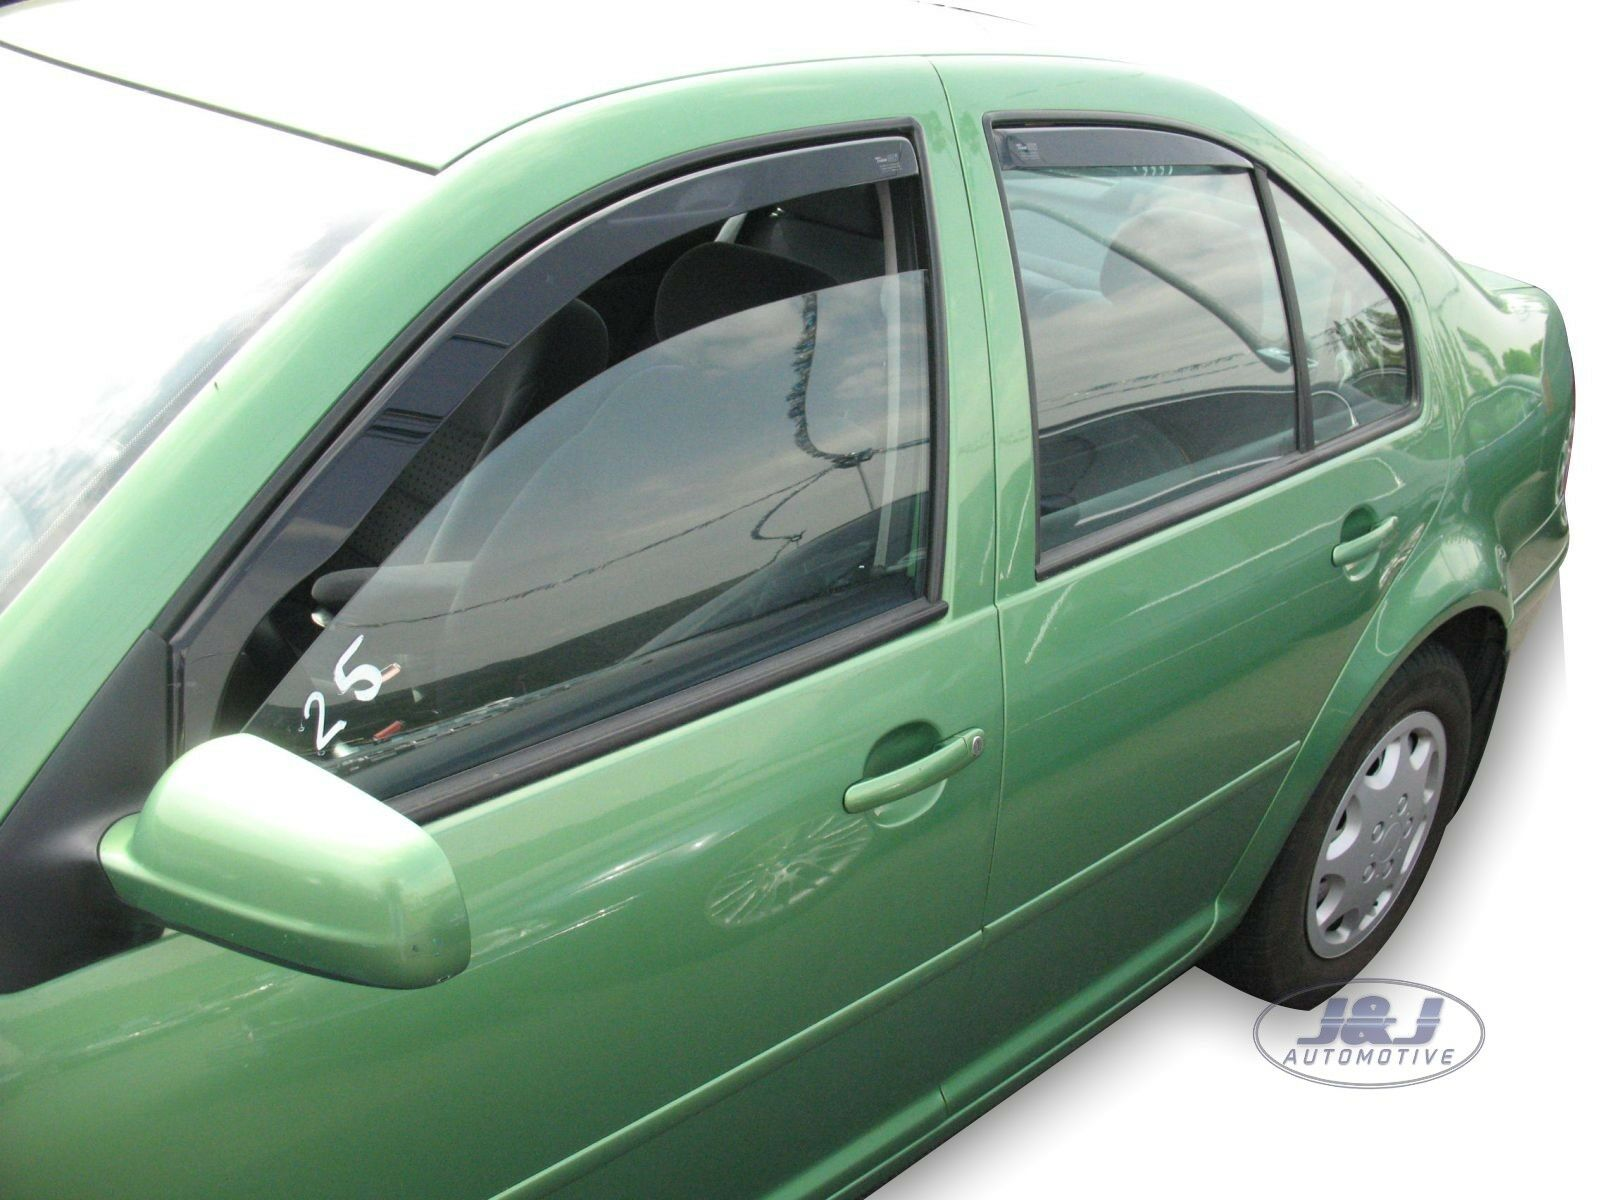 HEKO wind deflectors FULL 4 piece set VW BORA 4 doors 1998-2005